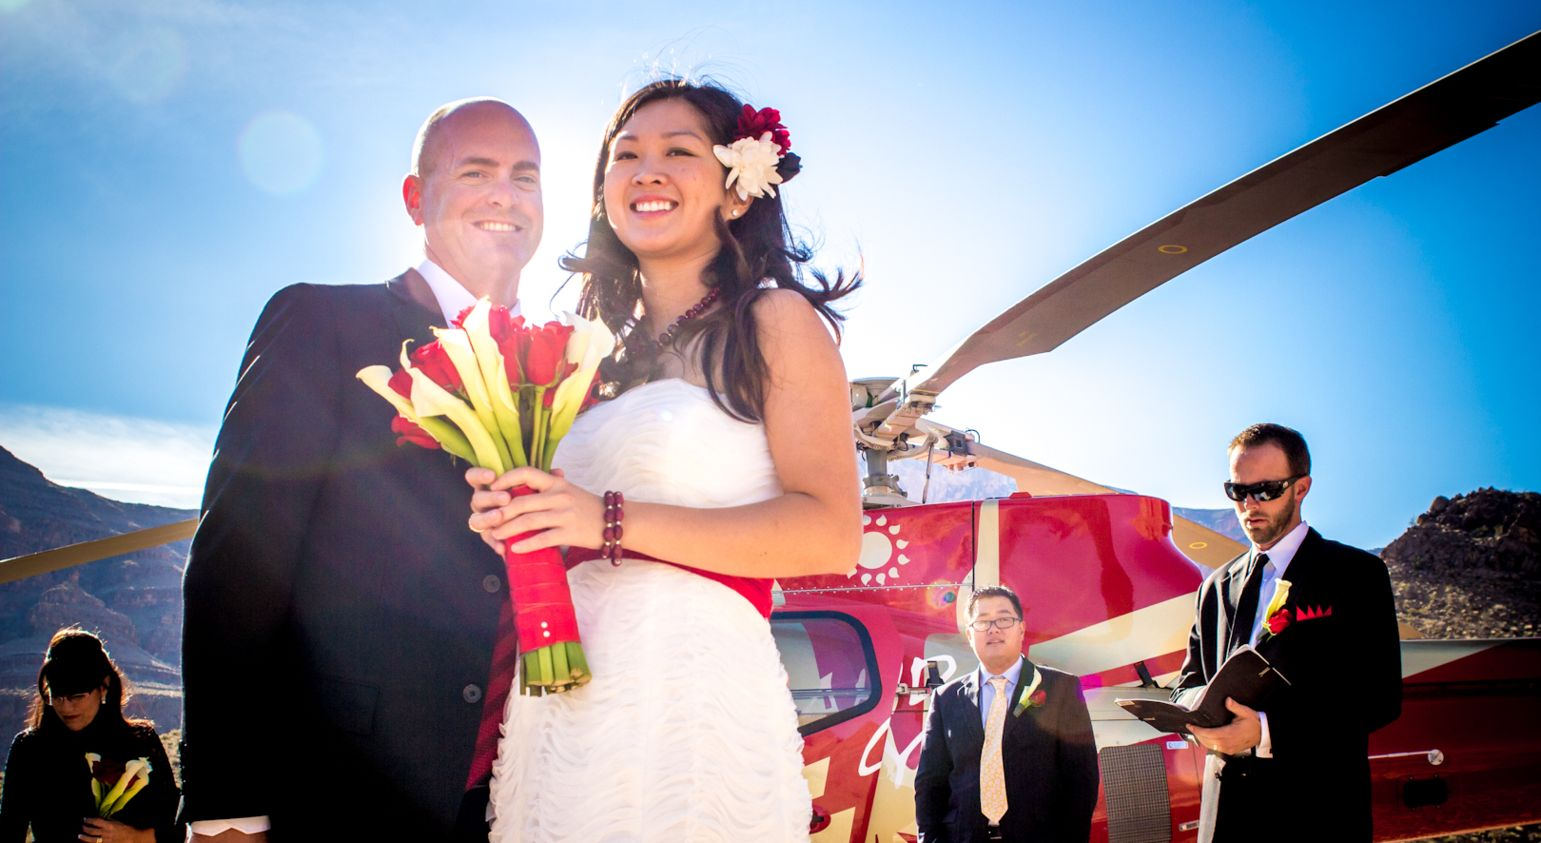 A bride and groom stand in front of a helicopter at their Grand Canyon wedding.